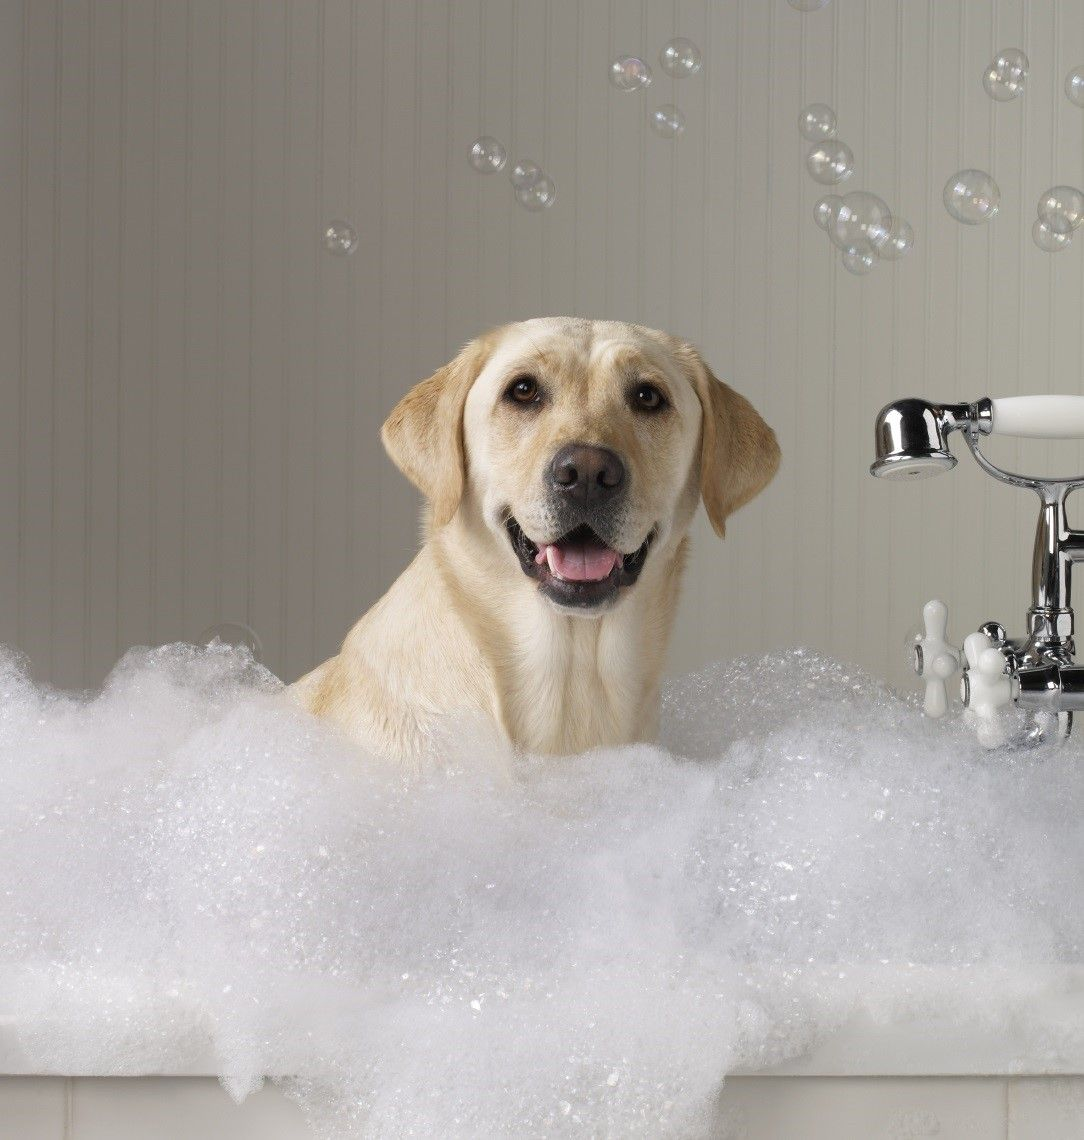 How To Groom A Dog Homemade Dog Shampoo Dog Shampoo Dogs